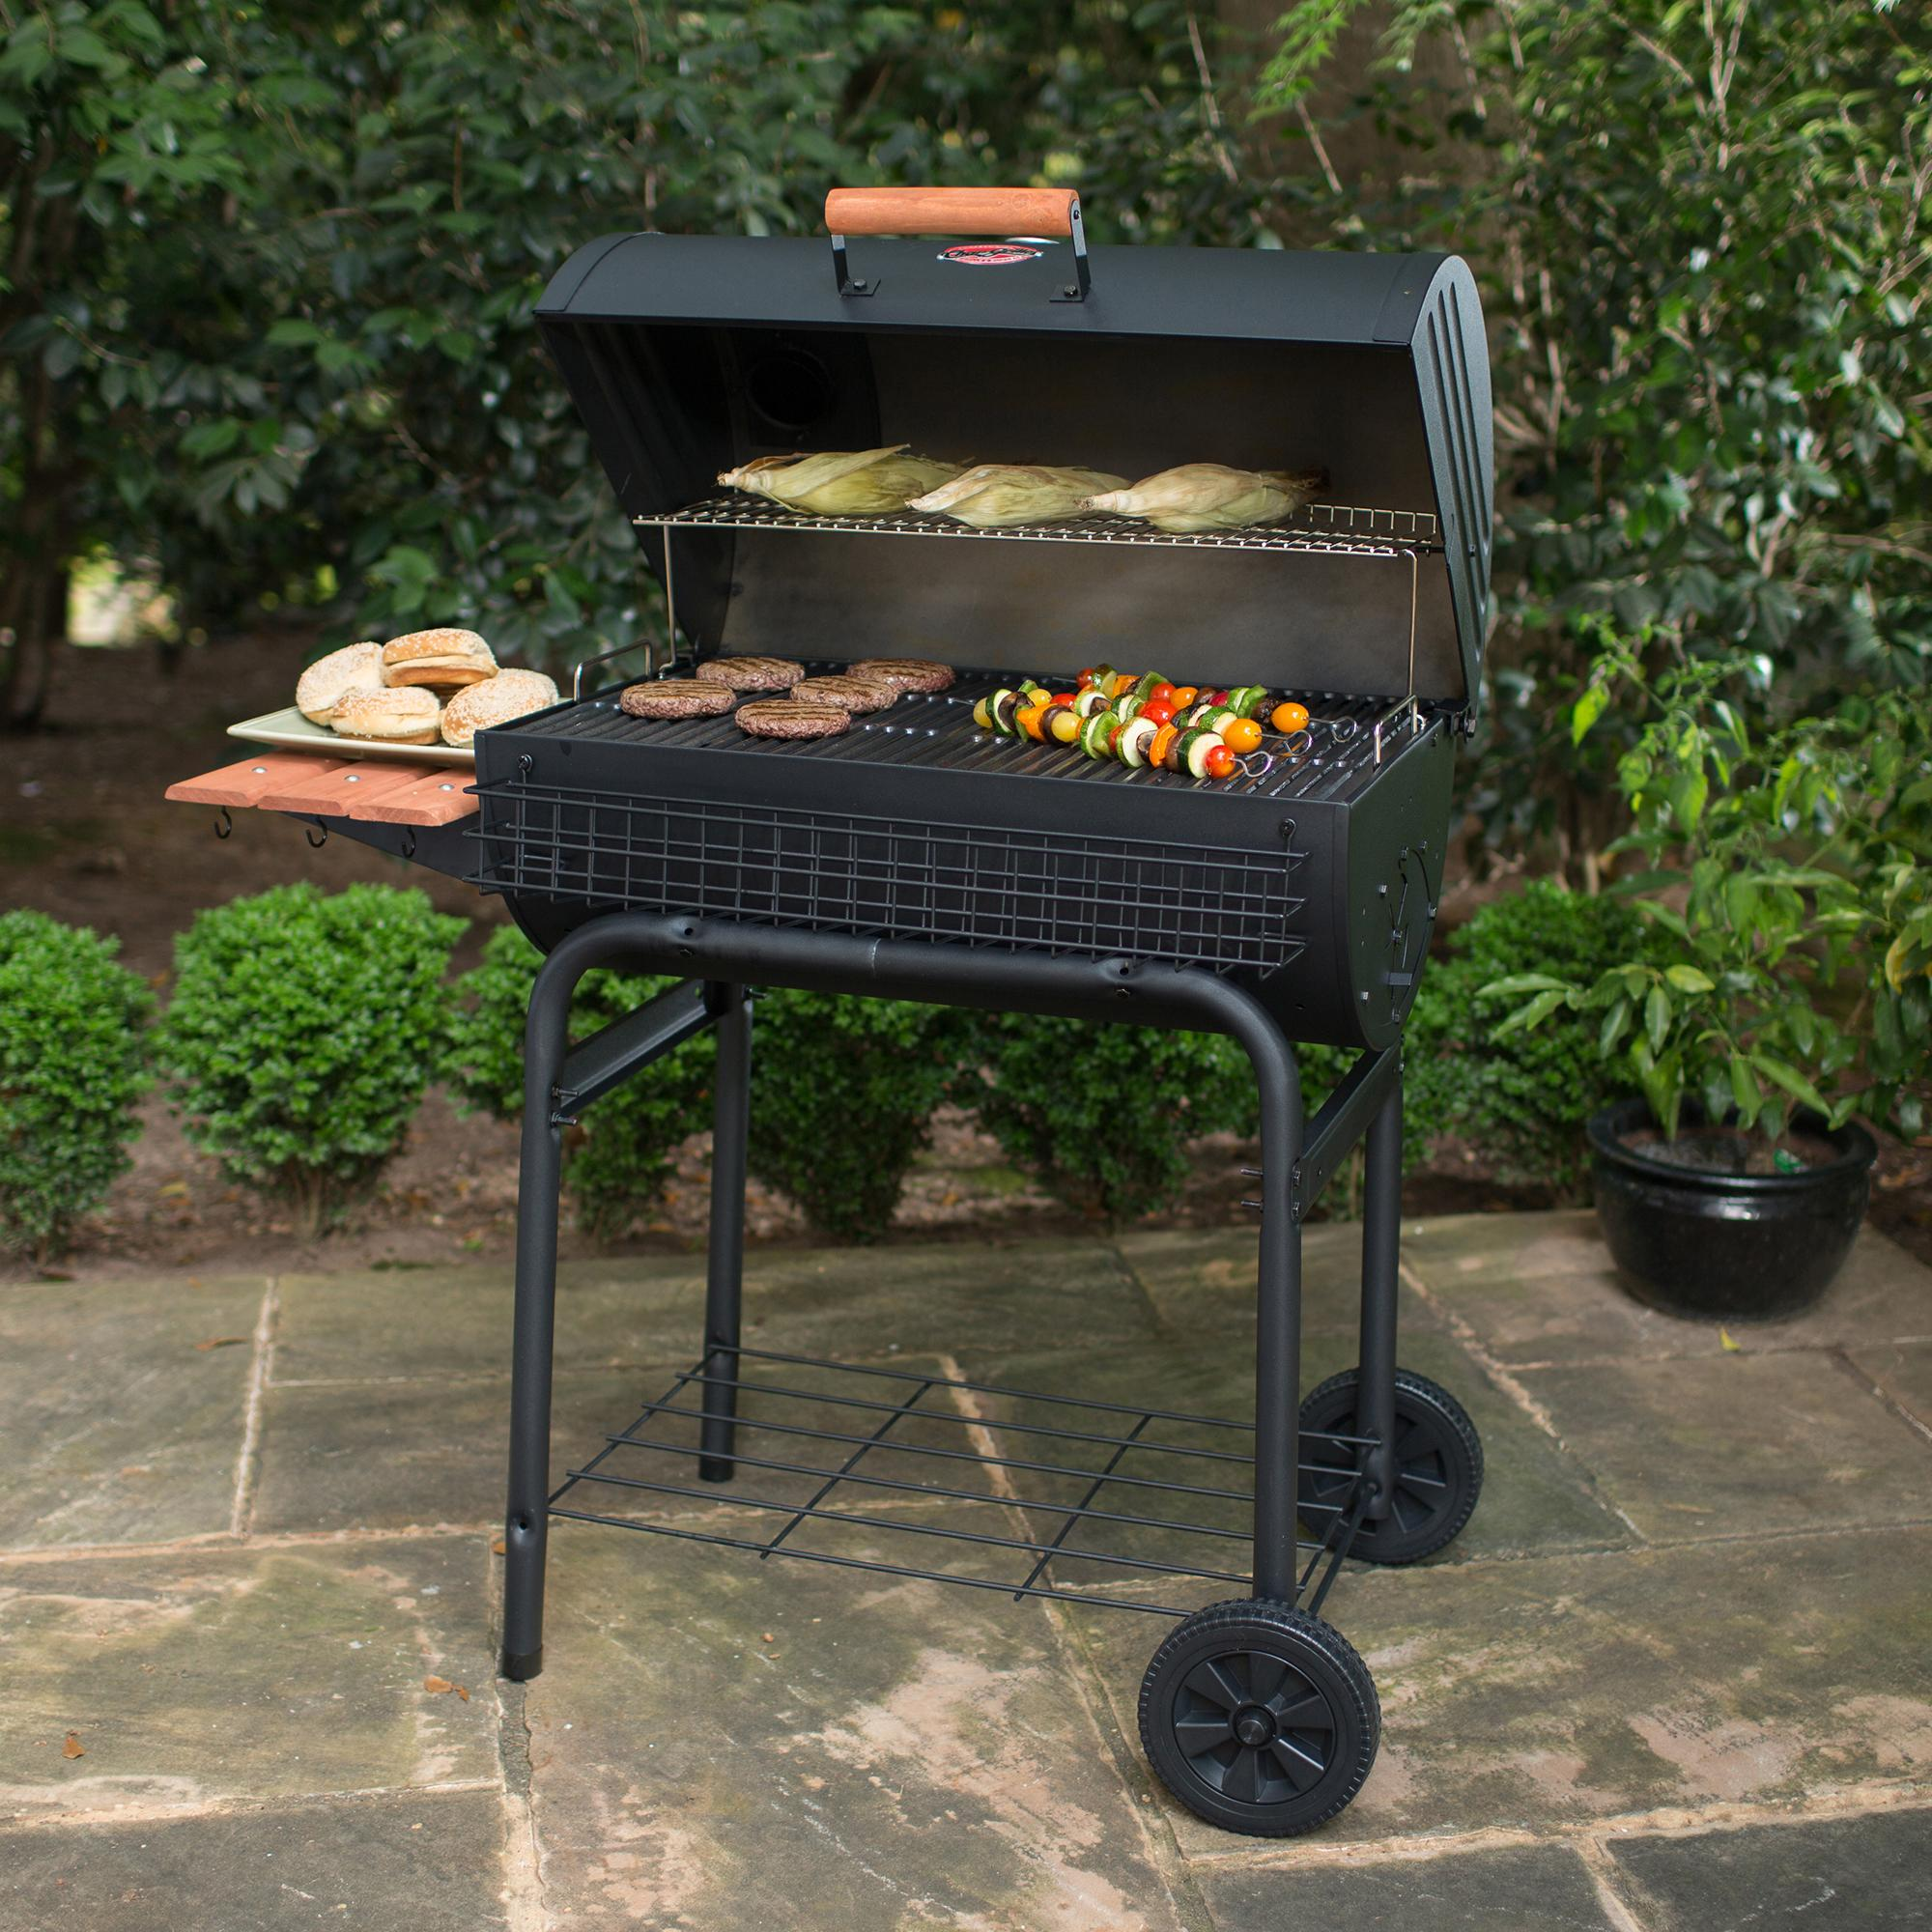 char griller 2828 pro deluxe charcoal grill patio lawn garden. Black Bedroom Furniture Sets. Home Design Ideas